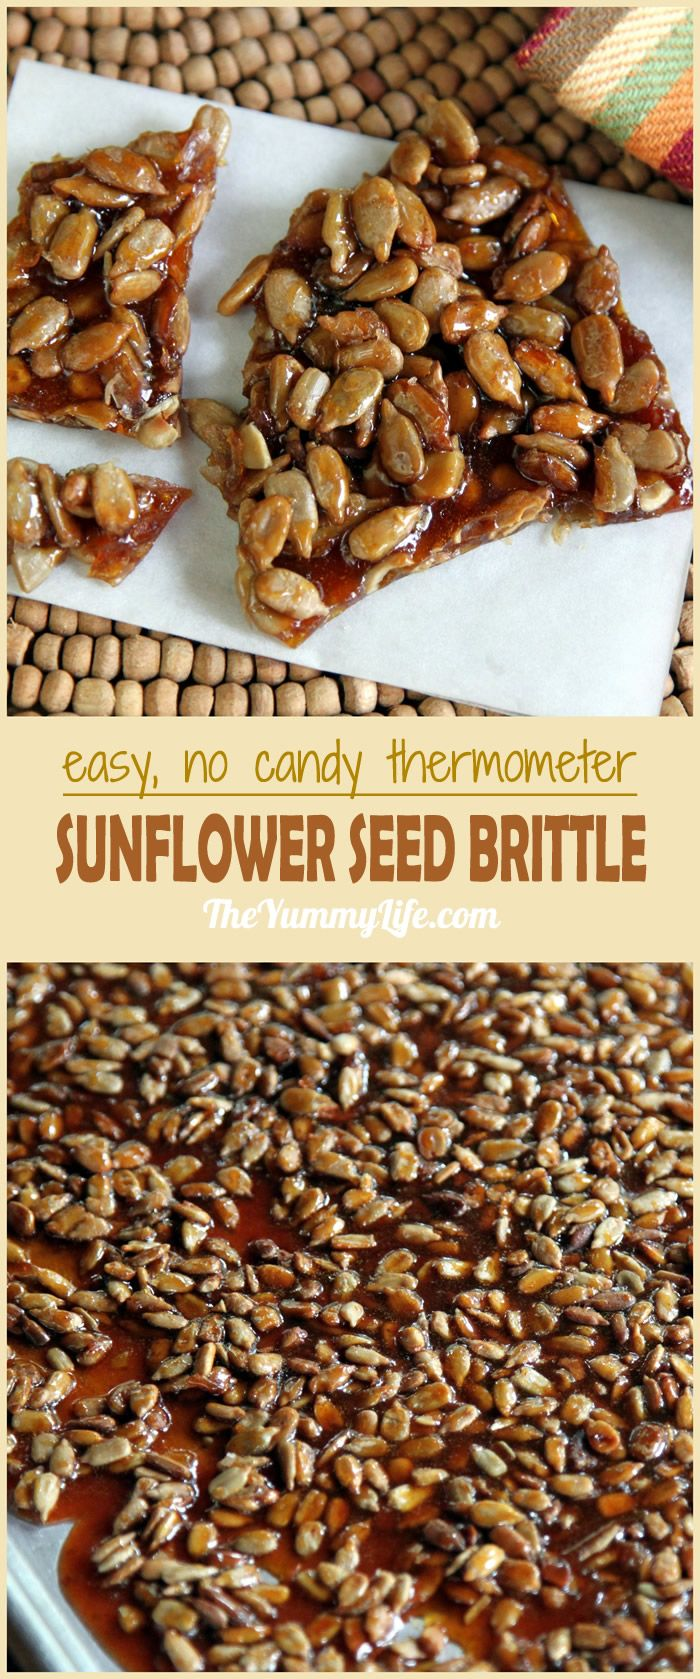 Easy Sunflower Seed Brittle